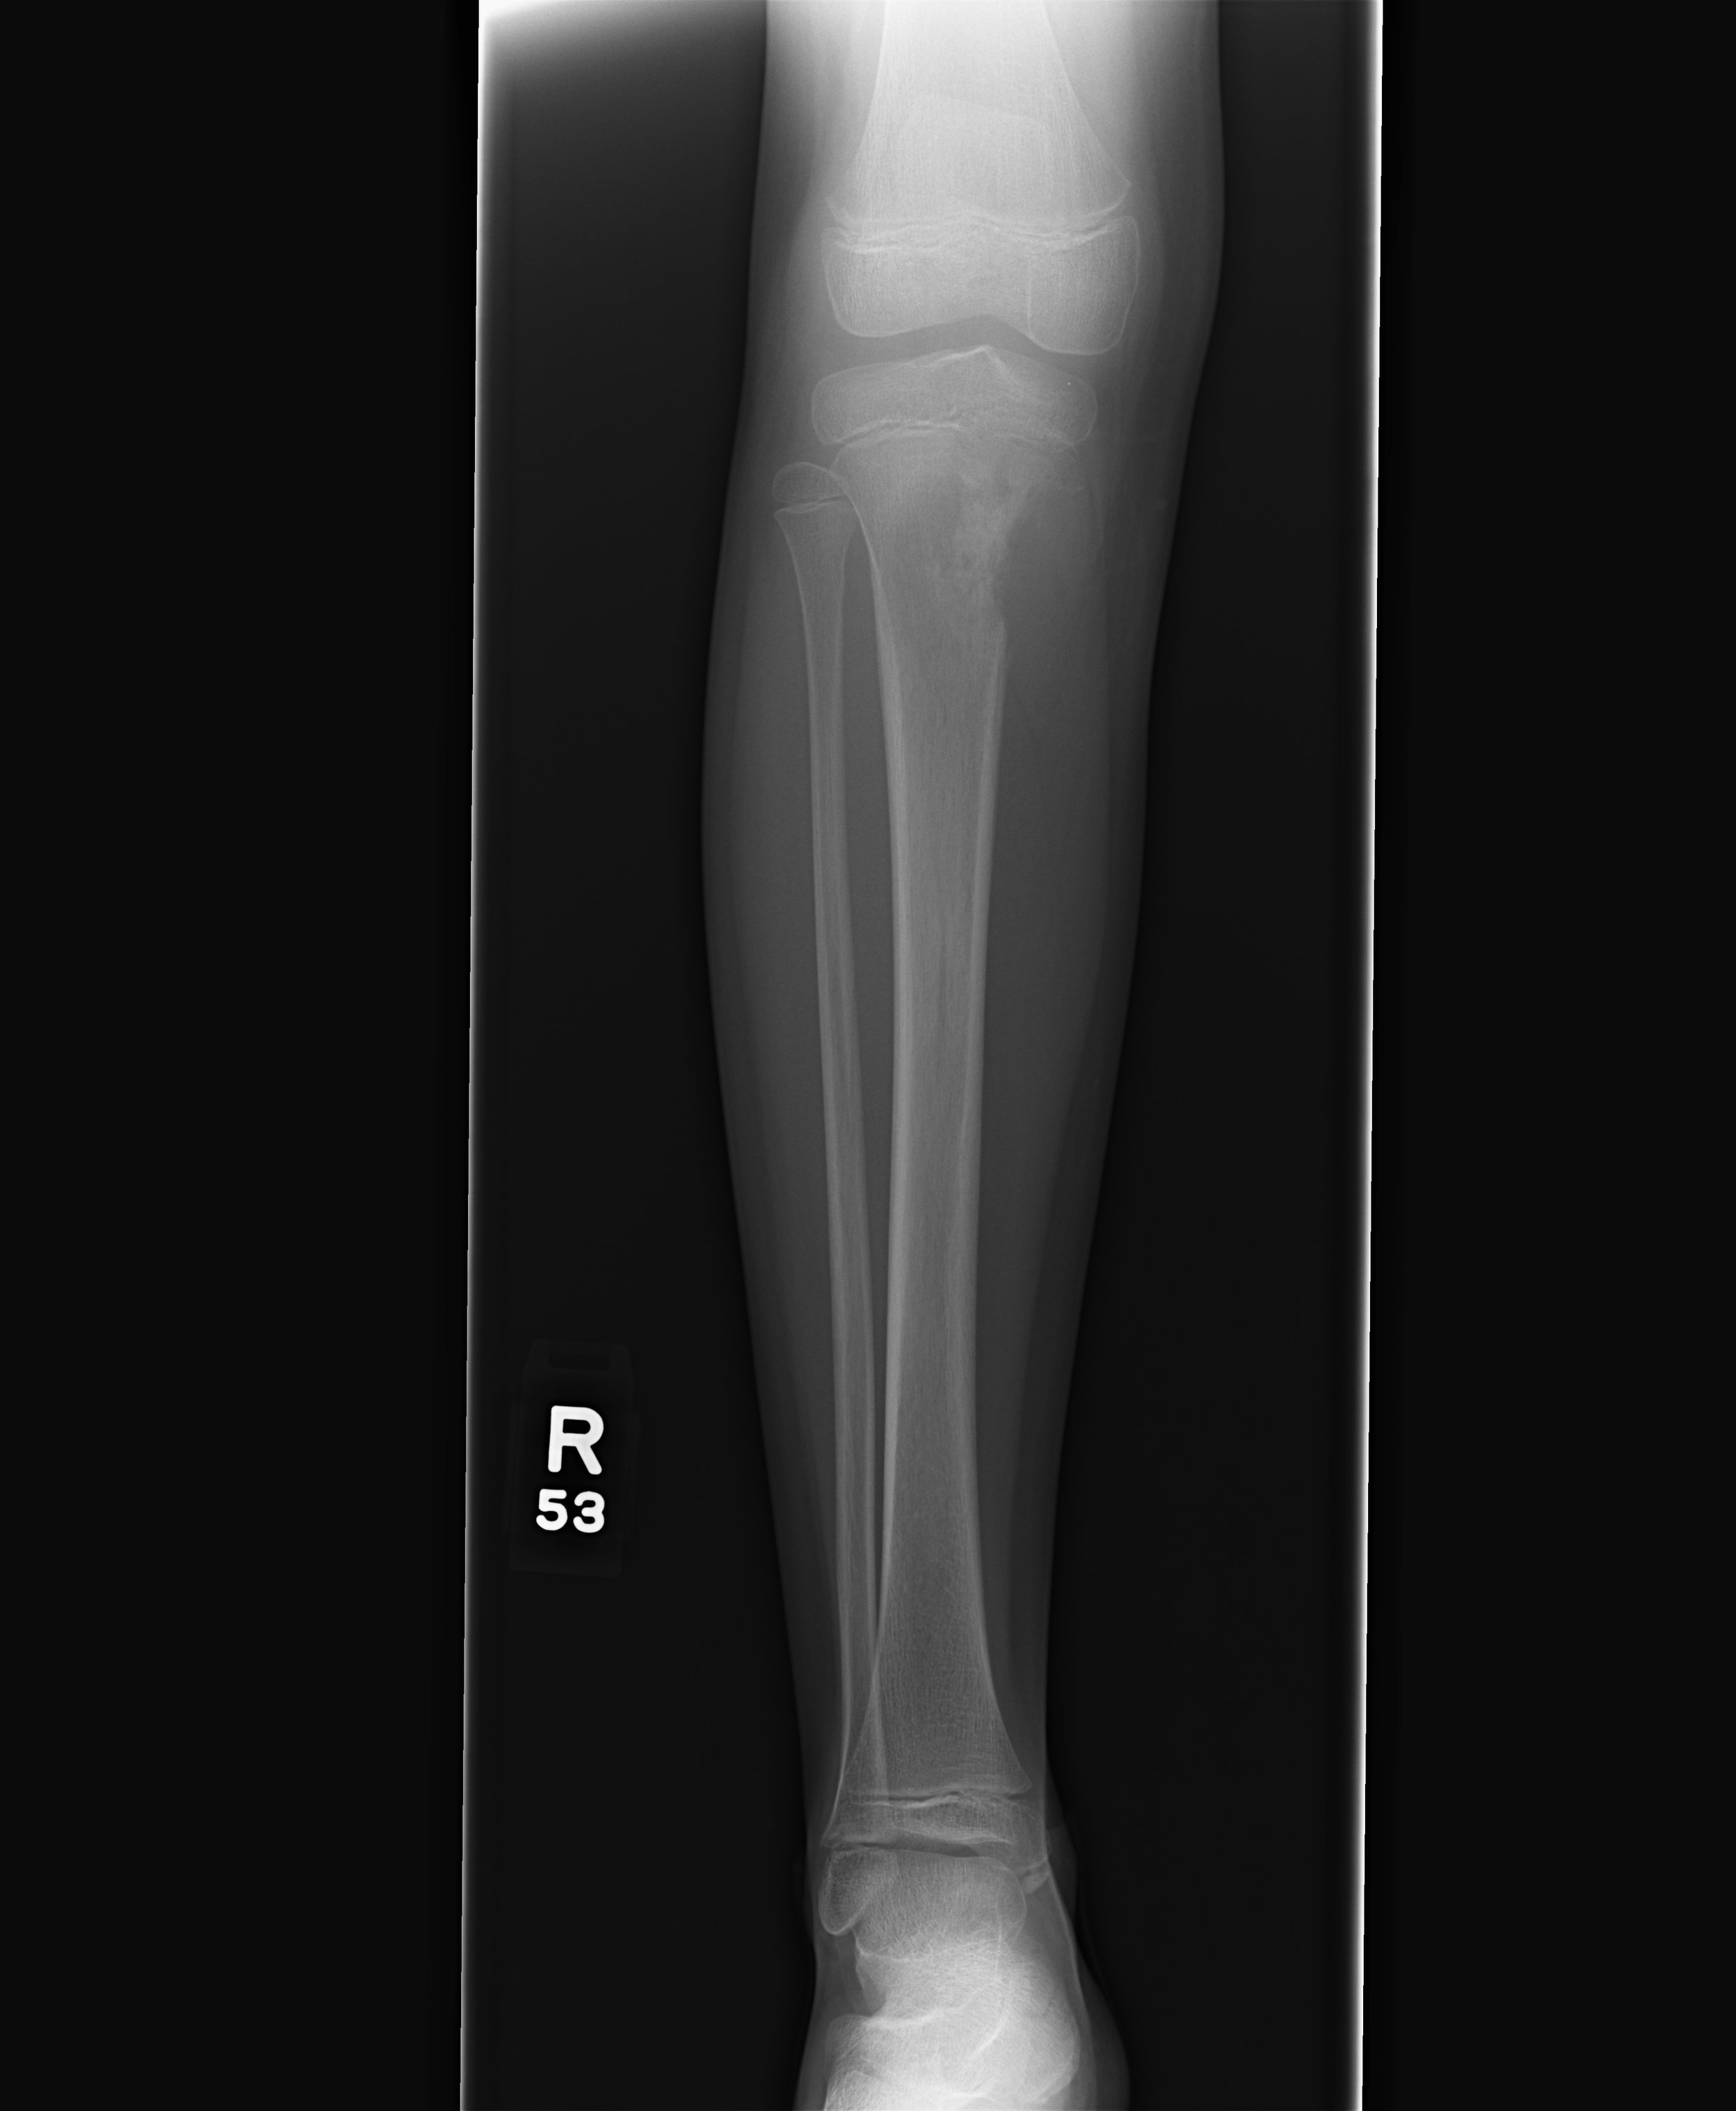 Osteosarcoma on right proximal tibia.